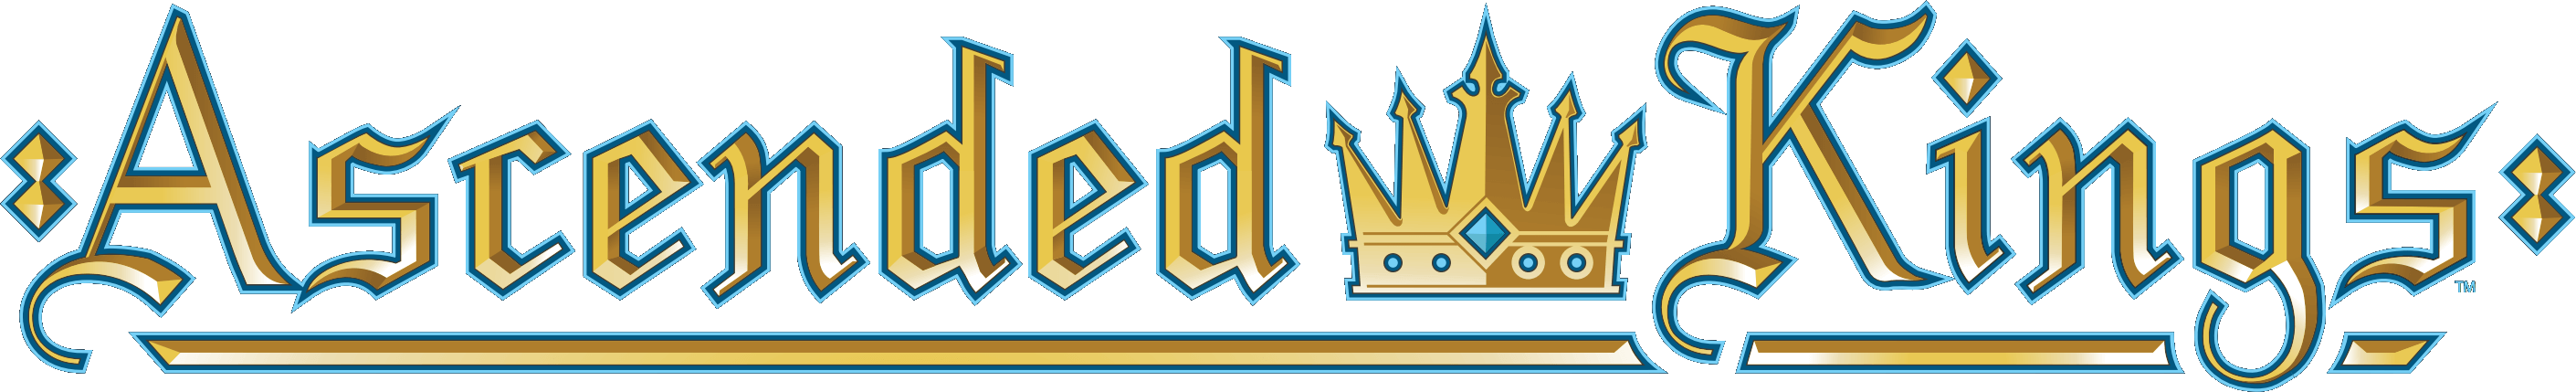 Top logo for Ascended Kings